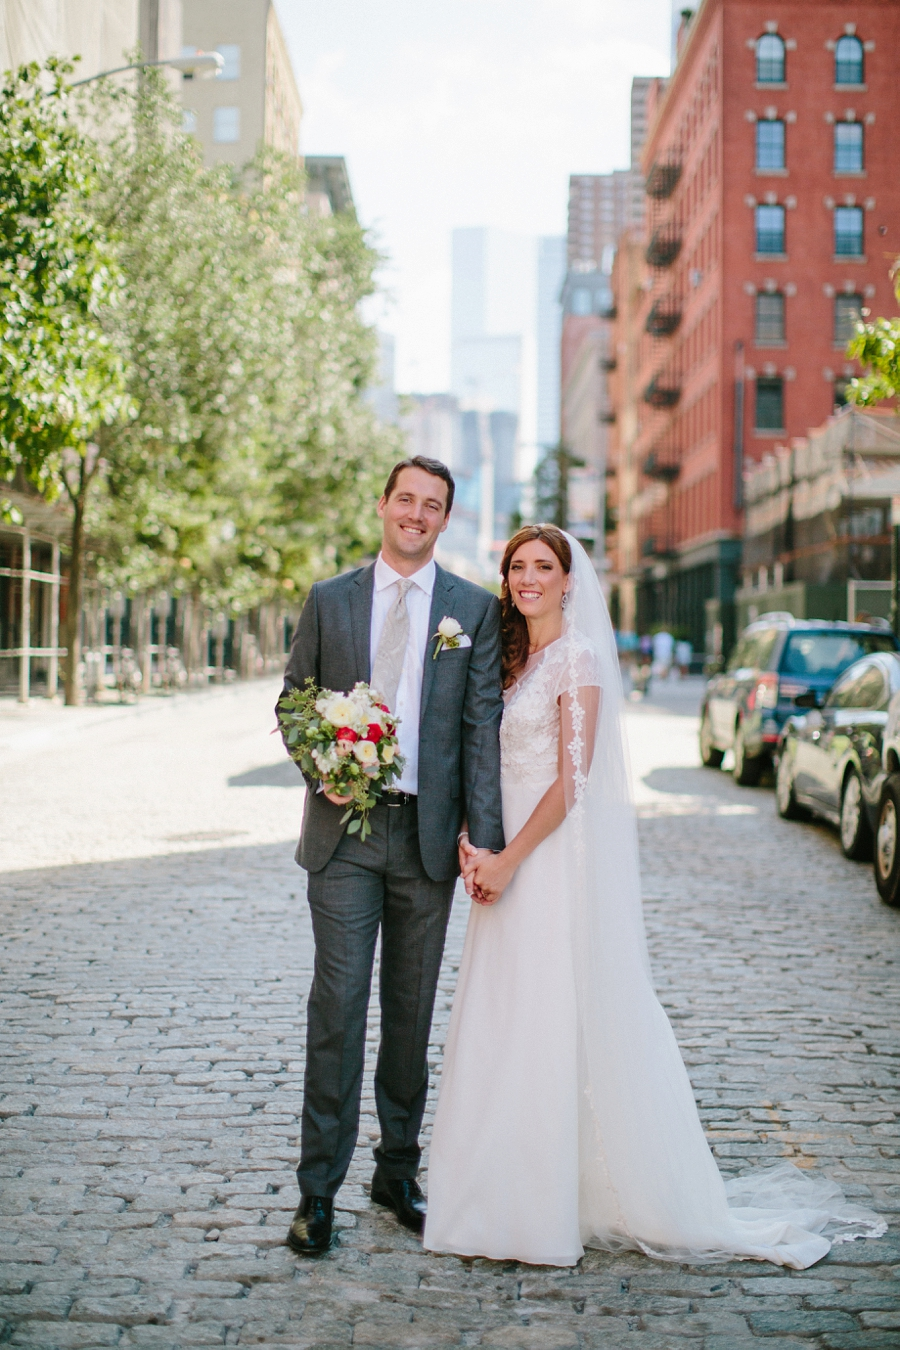 NYC-destination-wedding-photographer-tribeca-intimate-church_0032.jpg